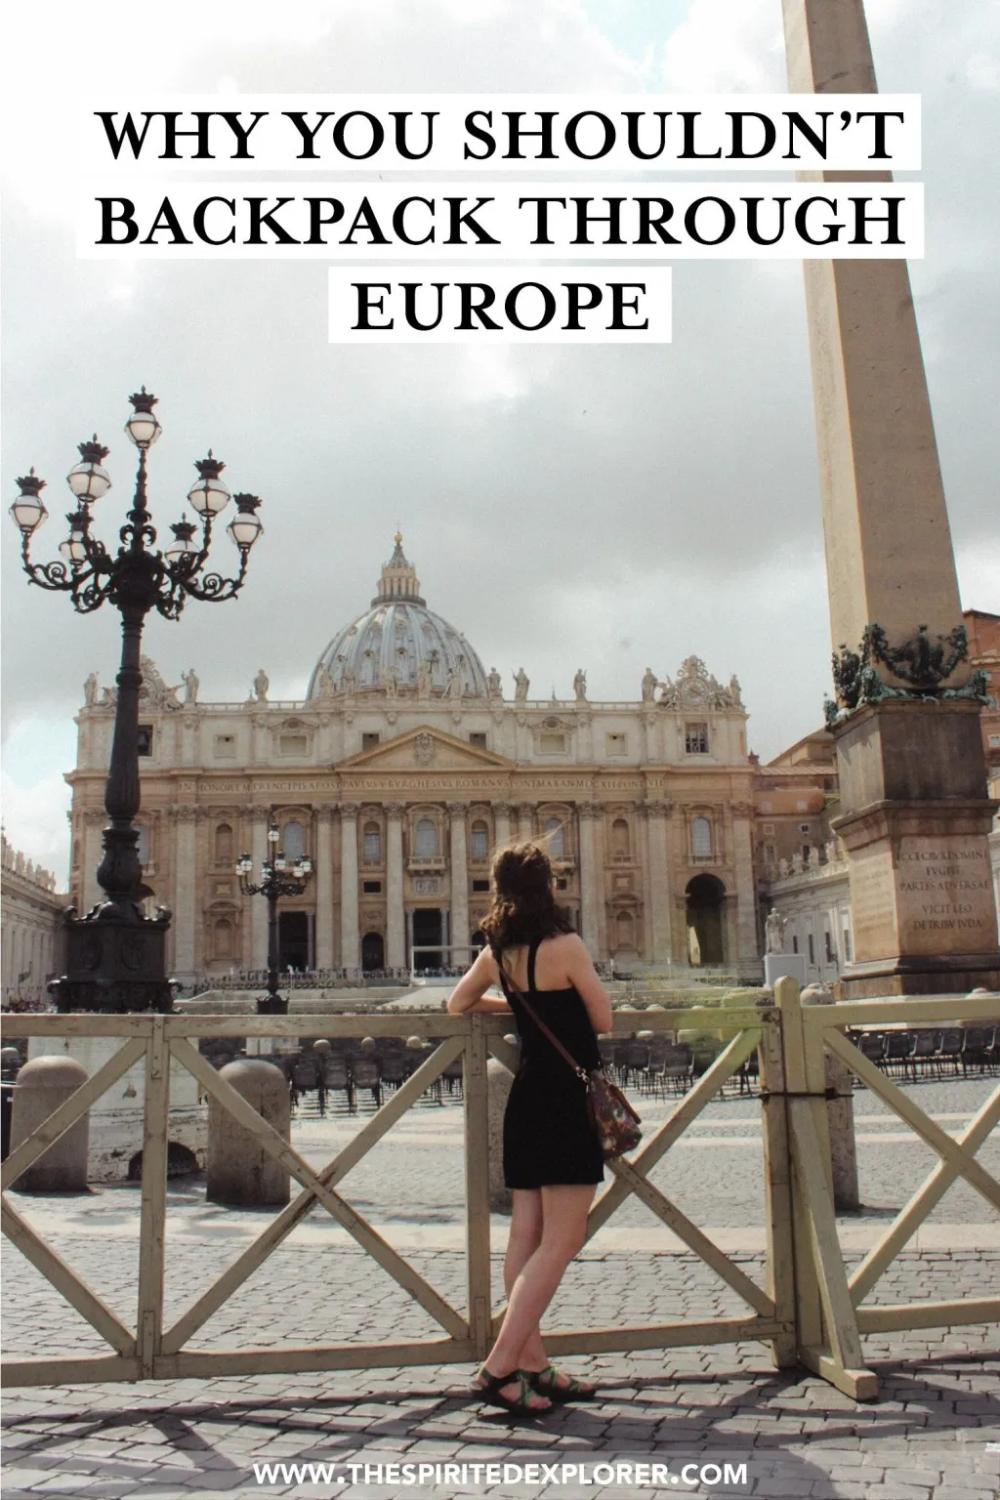 Backpacking Through Europe Is Not The Way To Great Experiences Abroad Backpack Through Europe Backpacking Europe Explore Travel